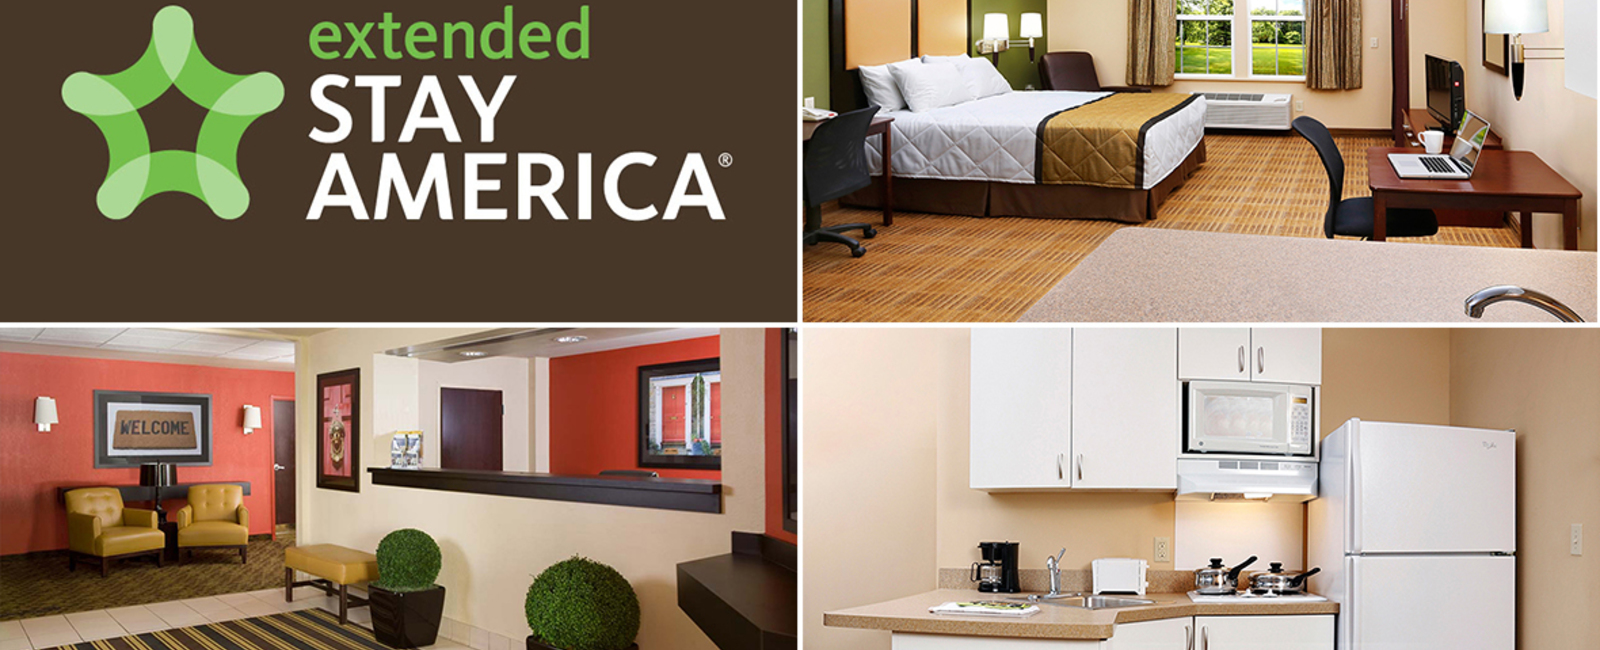 Extended Stay America - Sandy